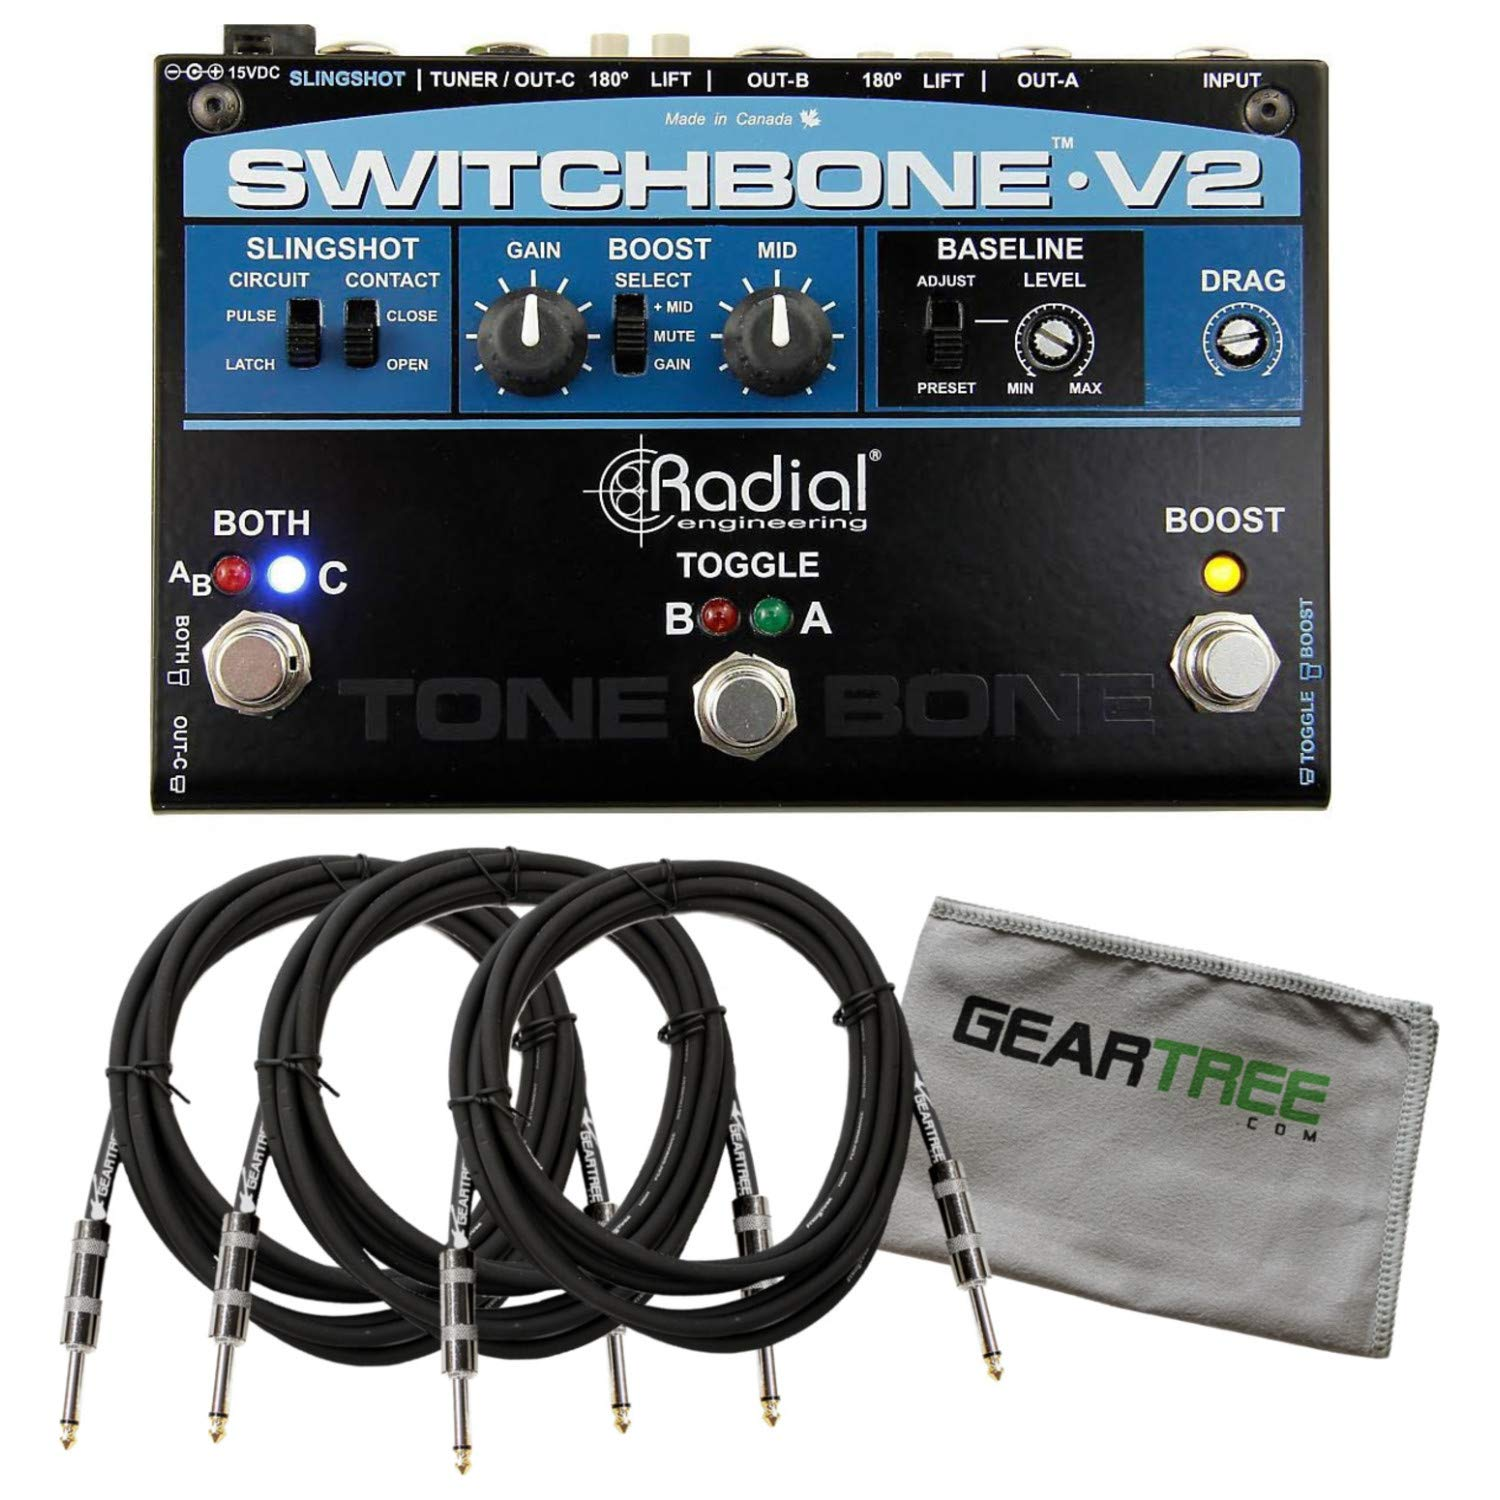 Radial Switchbone V2 ABY/C Switcher with LEDs, Boost, and Tuner Out w/Geartree by Radial (Image #1)